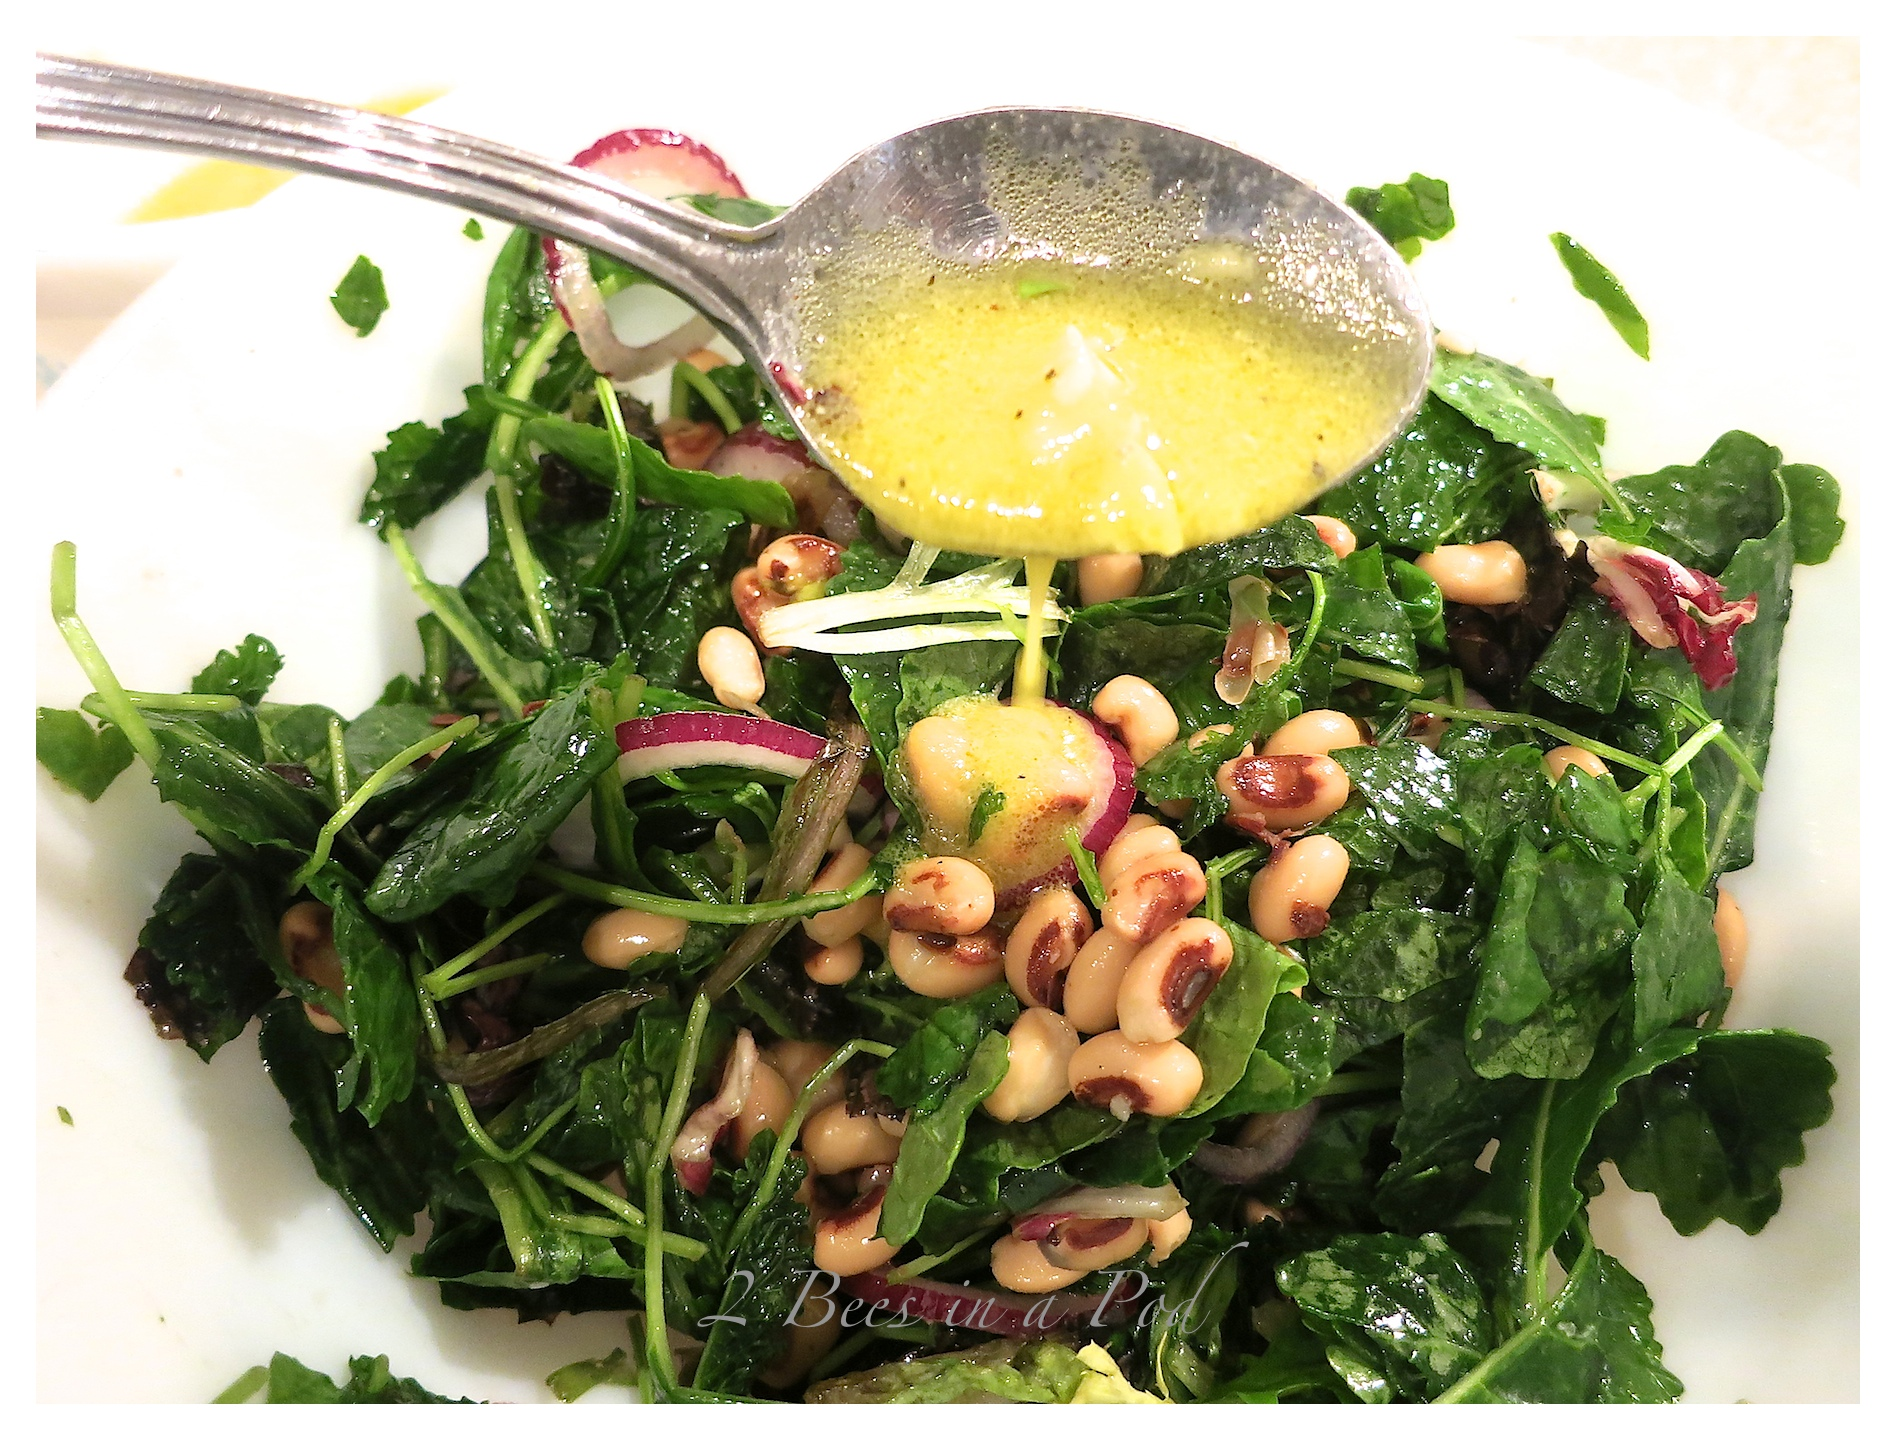 Super quick, easy and delicious recipe - Ham Steak with Kale and Black Eyed Pea Salad